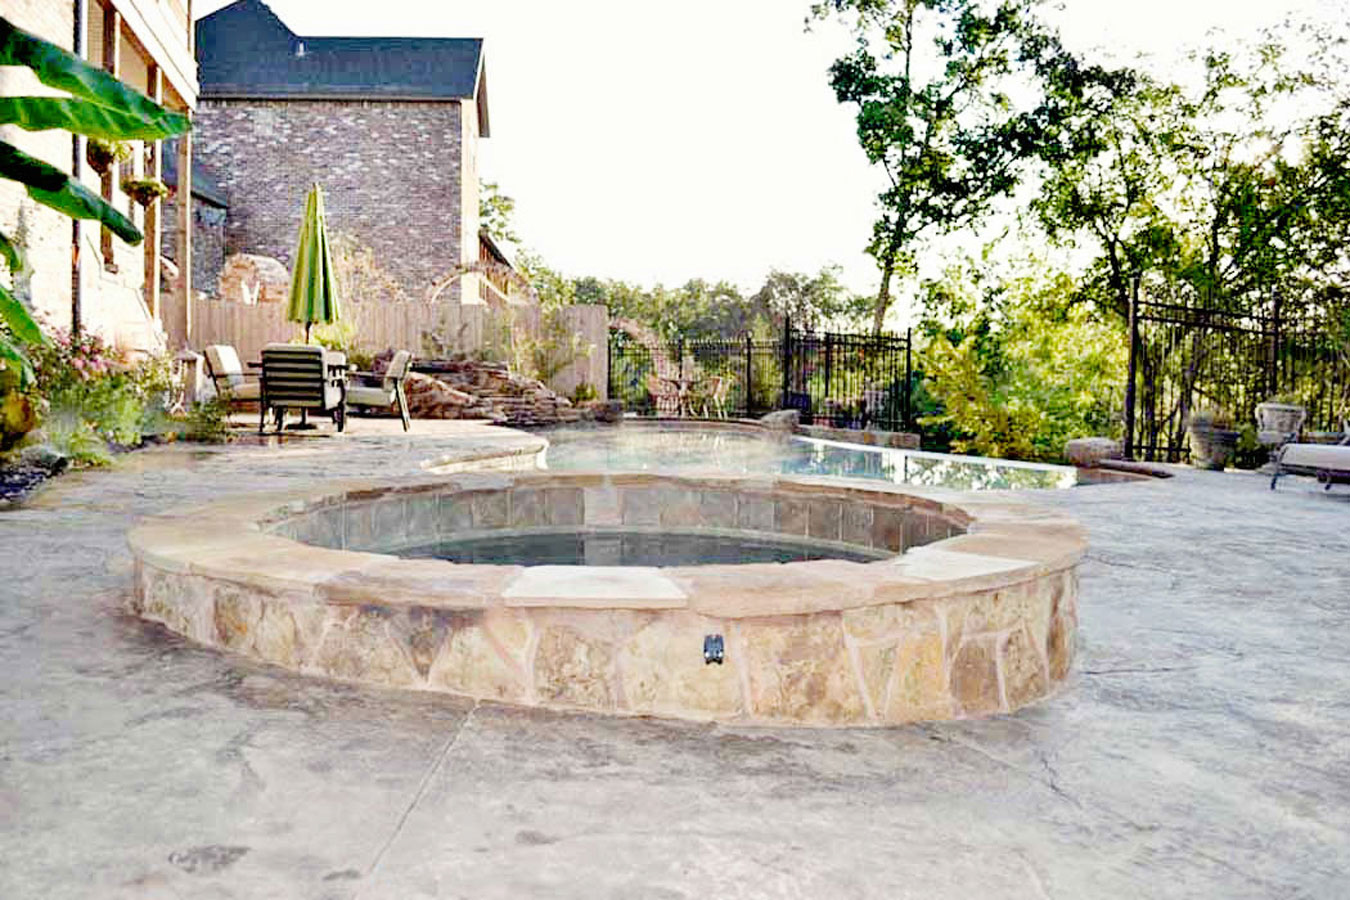 Jacuzzi Pool Bilder Swimming Pool Contractor Aquacrete In Nwa Bentonville